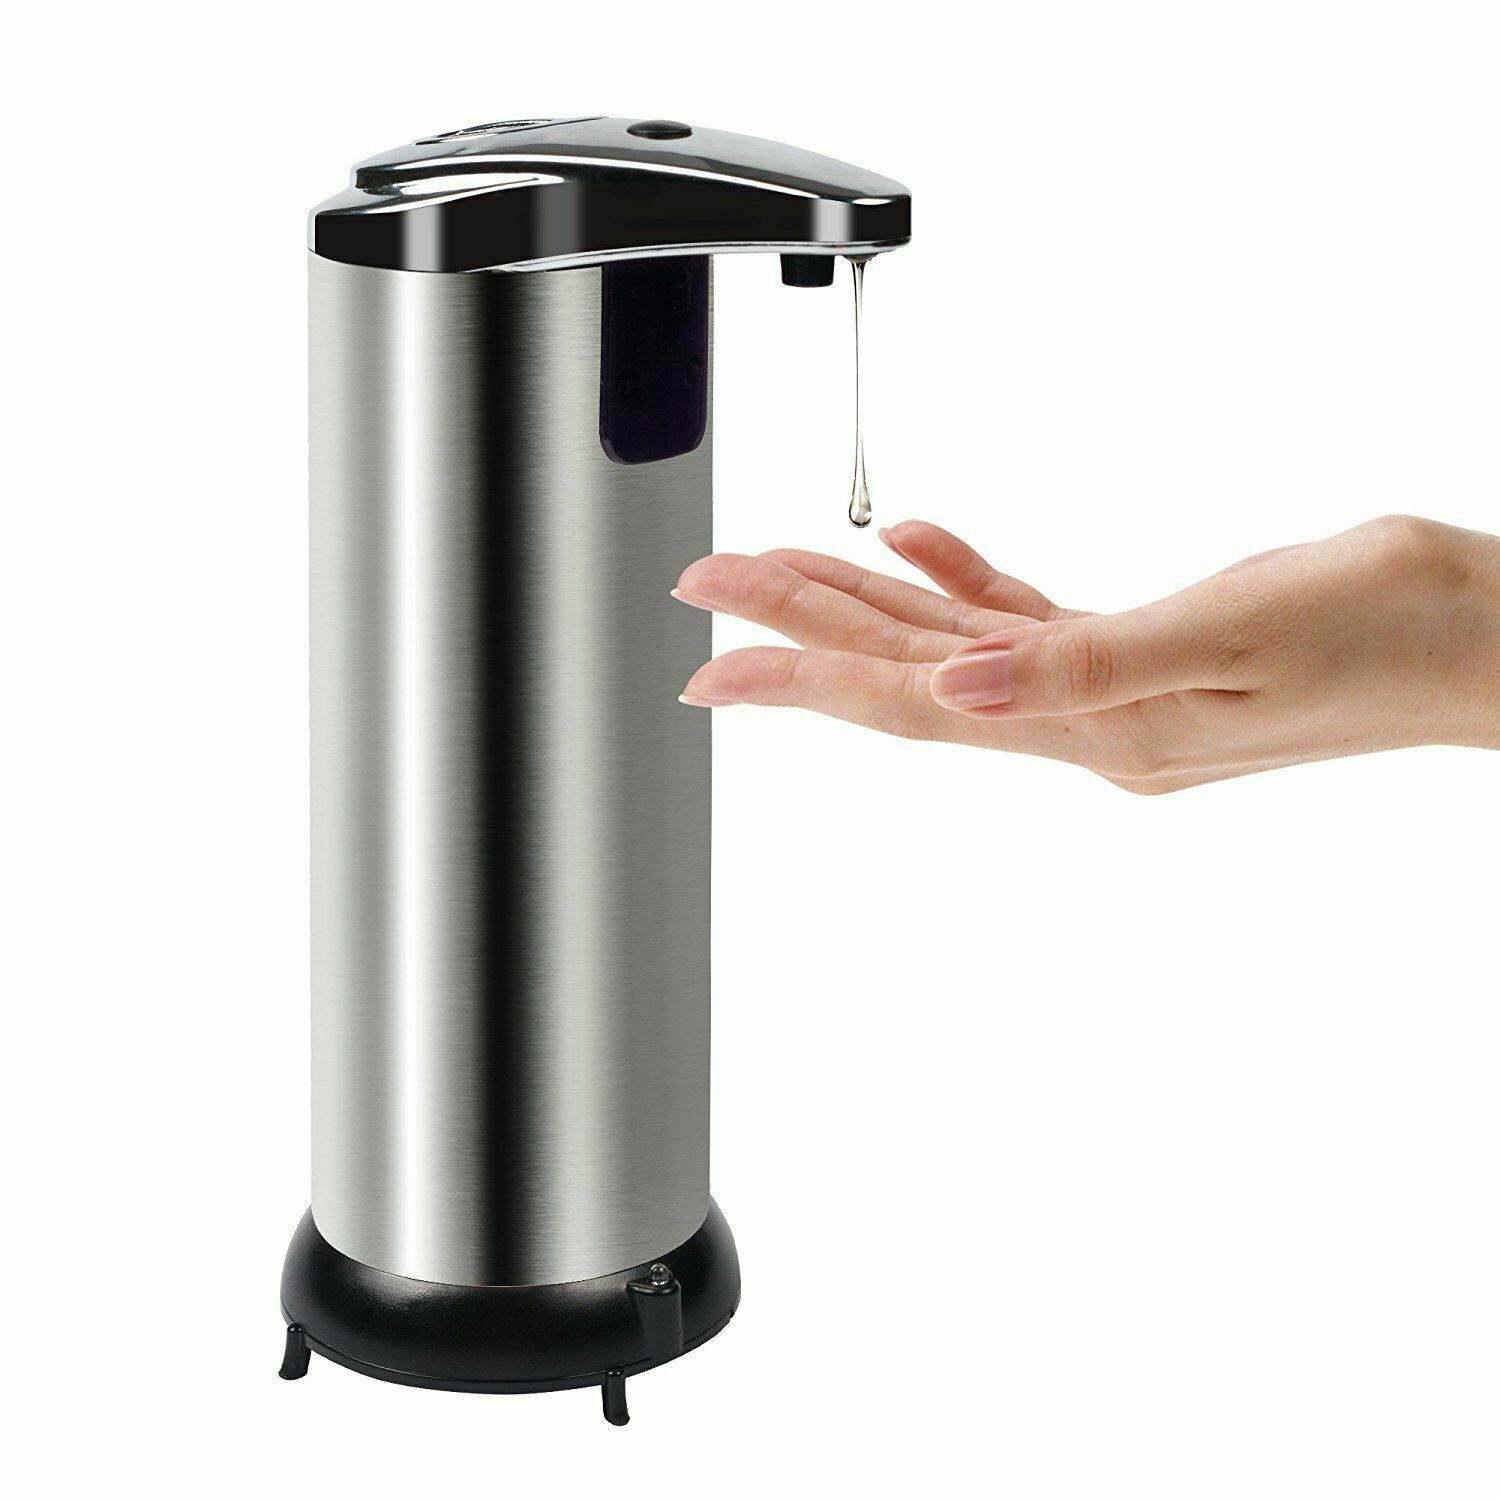 Touchless Handsfree Automatic Ir Sensor Soap Liquid Dispenser